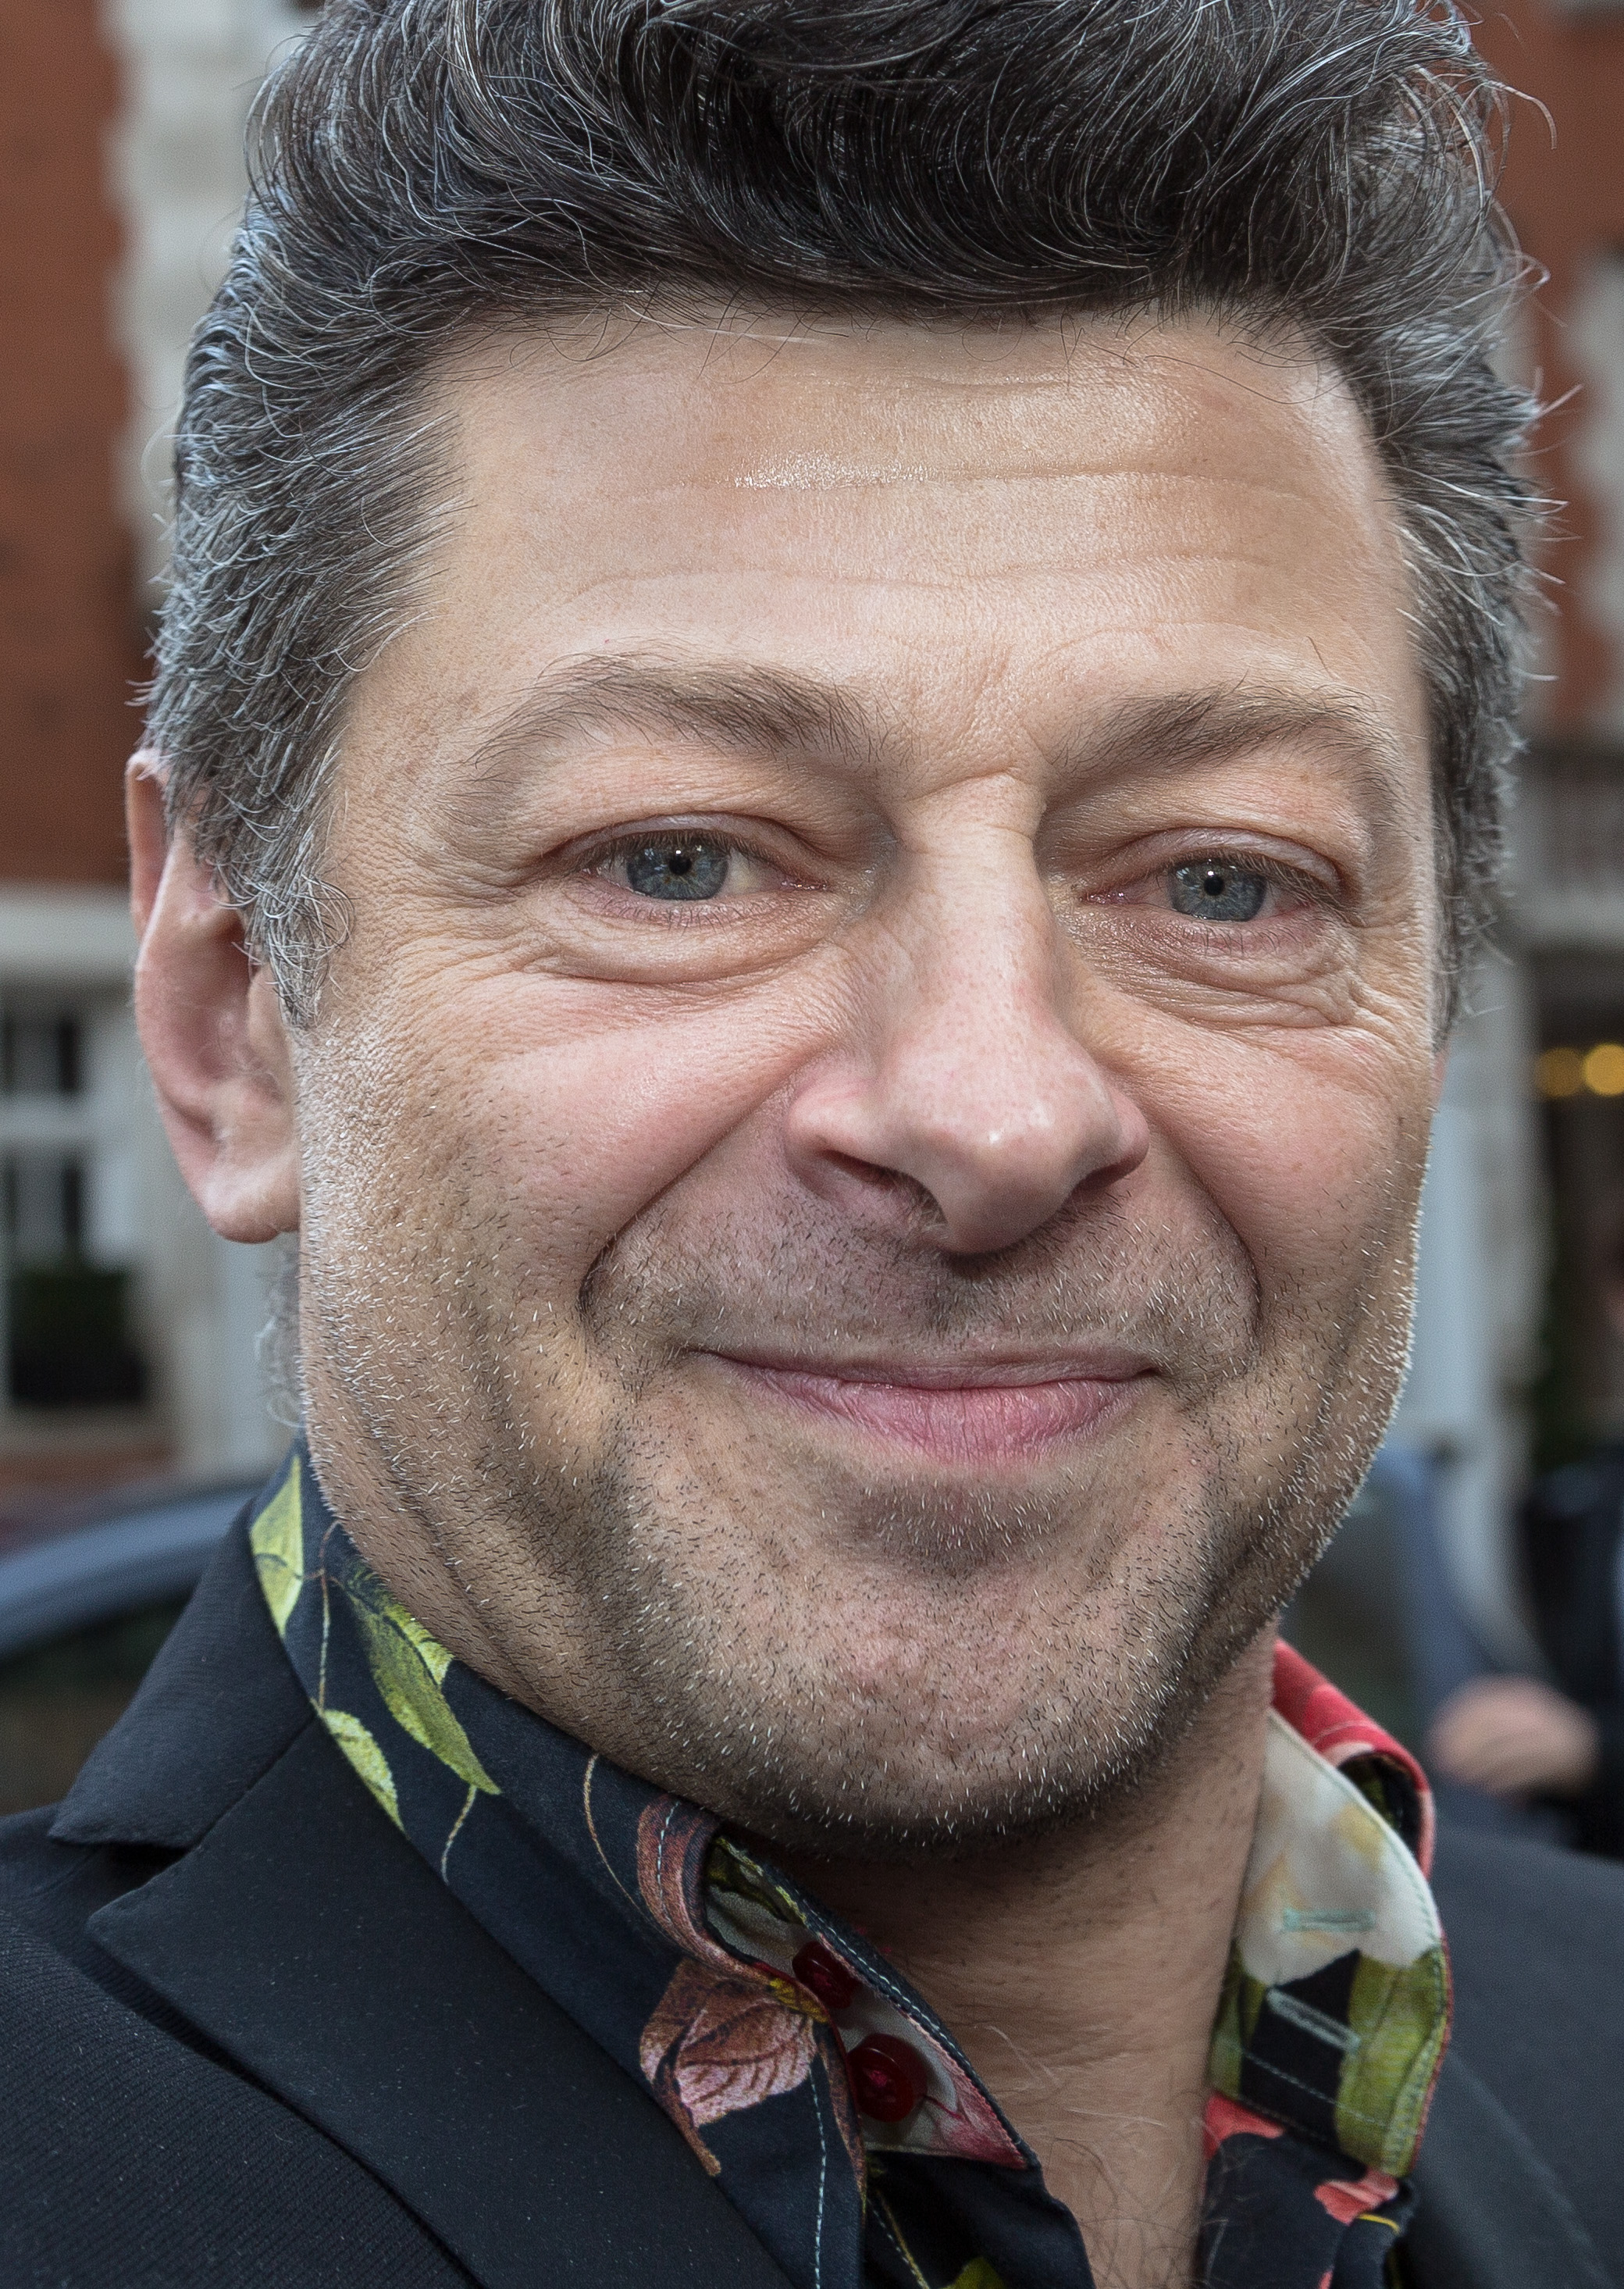 Andy Serkis (born 1964) nudes (21 photo), Tits, Hot, Selfie, in bikini 2006